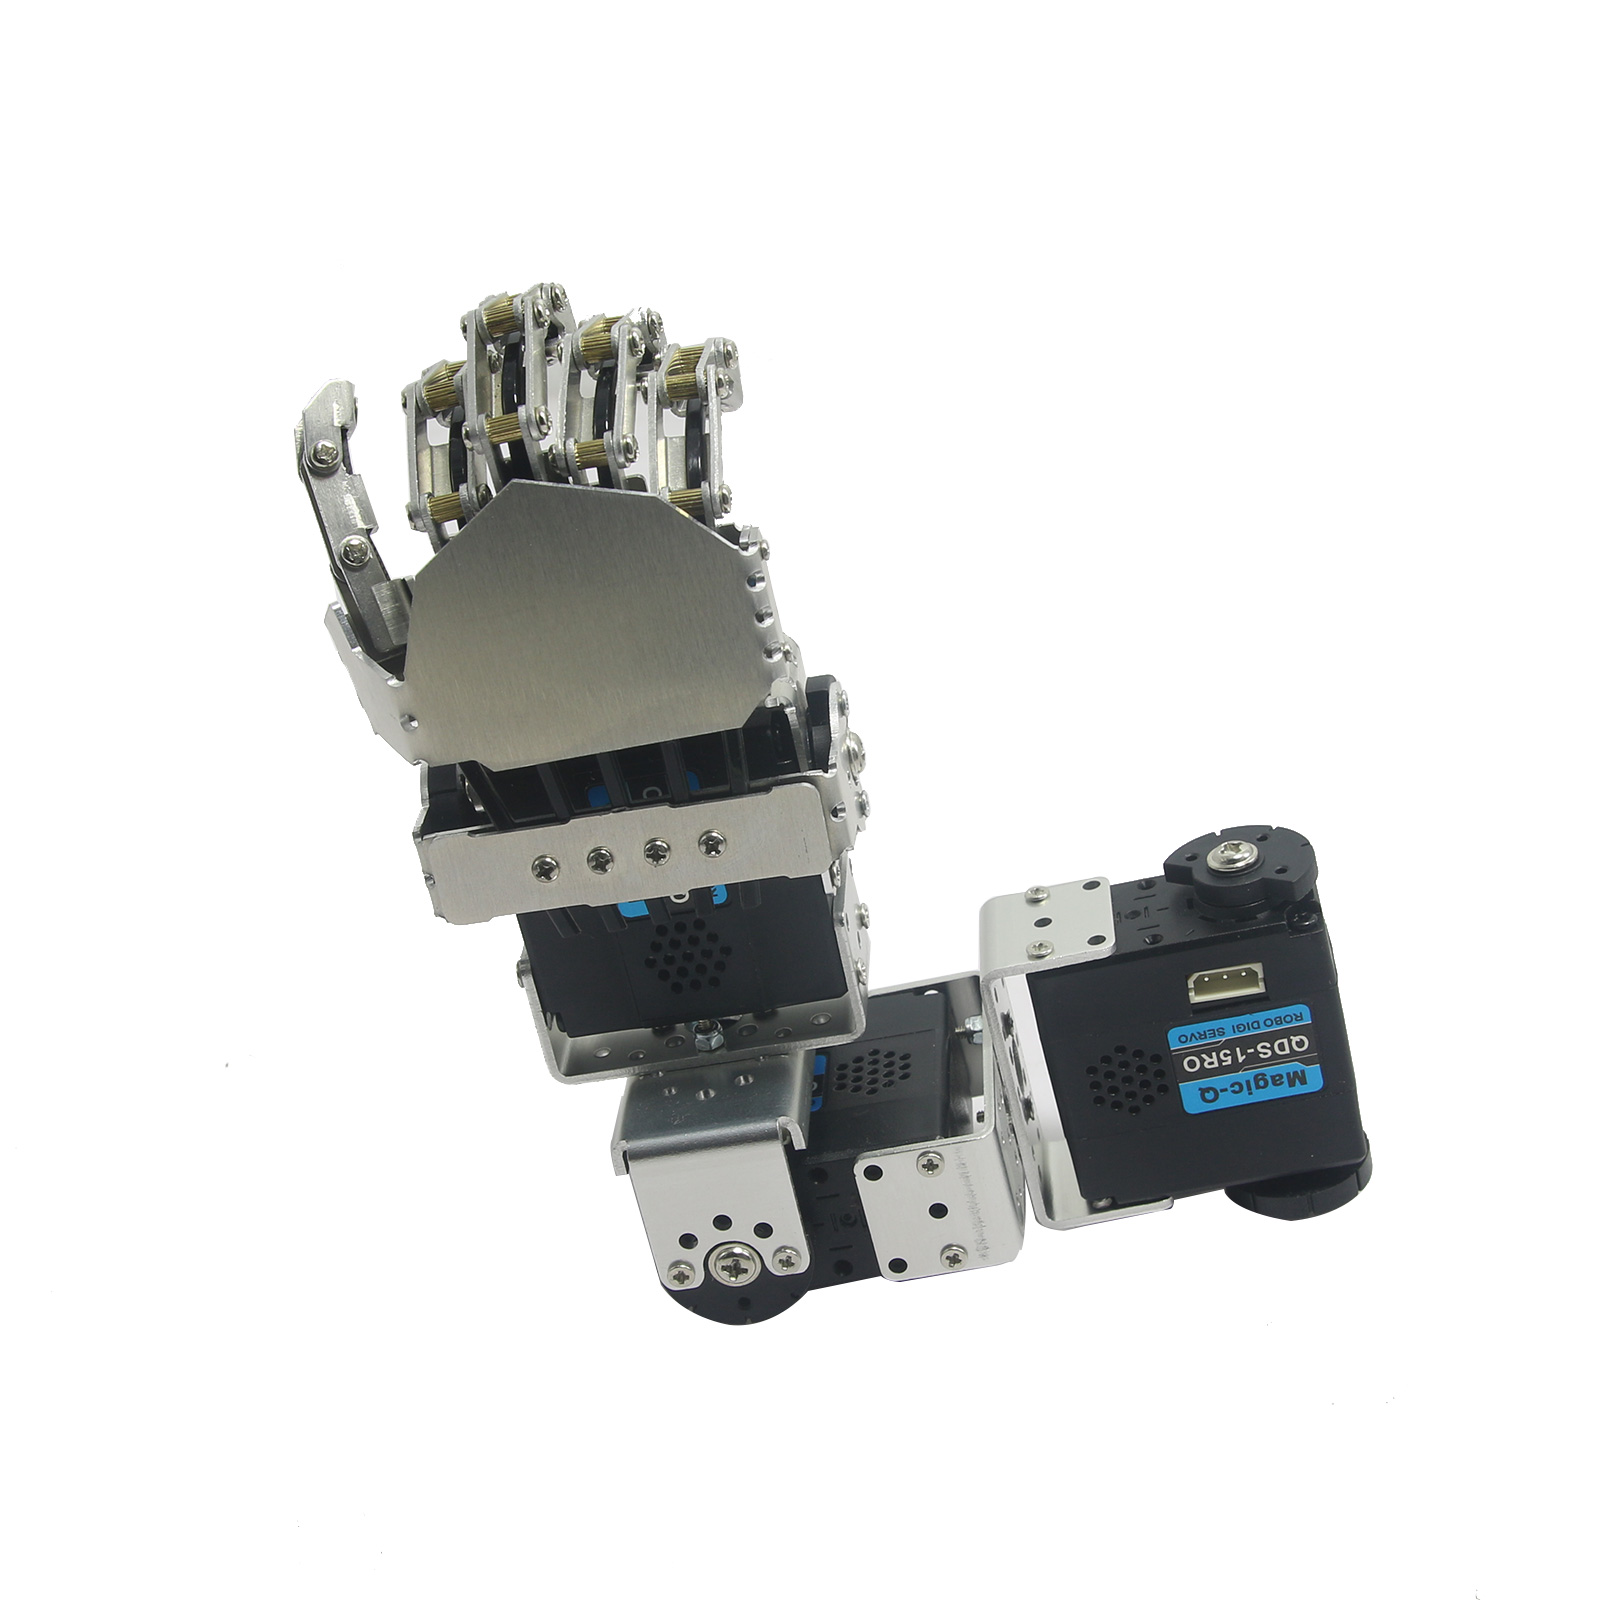 Humanoid Robot Left Hand Arm with Fingers Manipulator & Servo for DIY Robotics